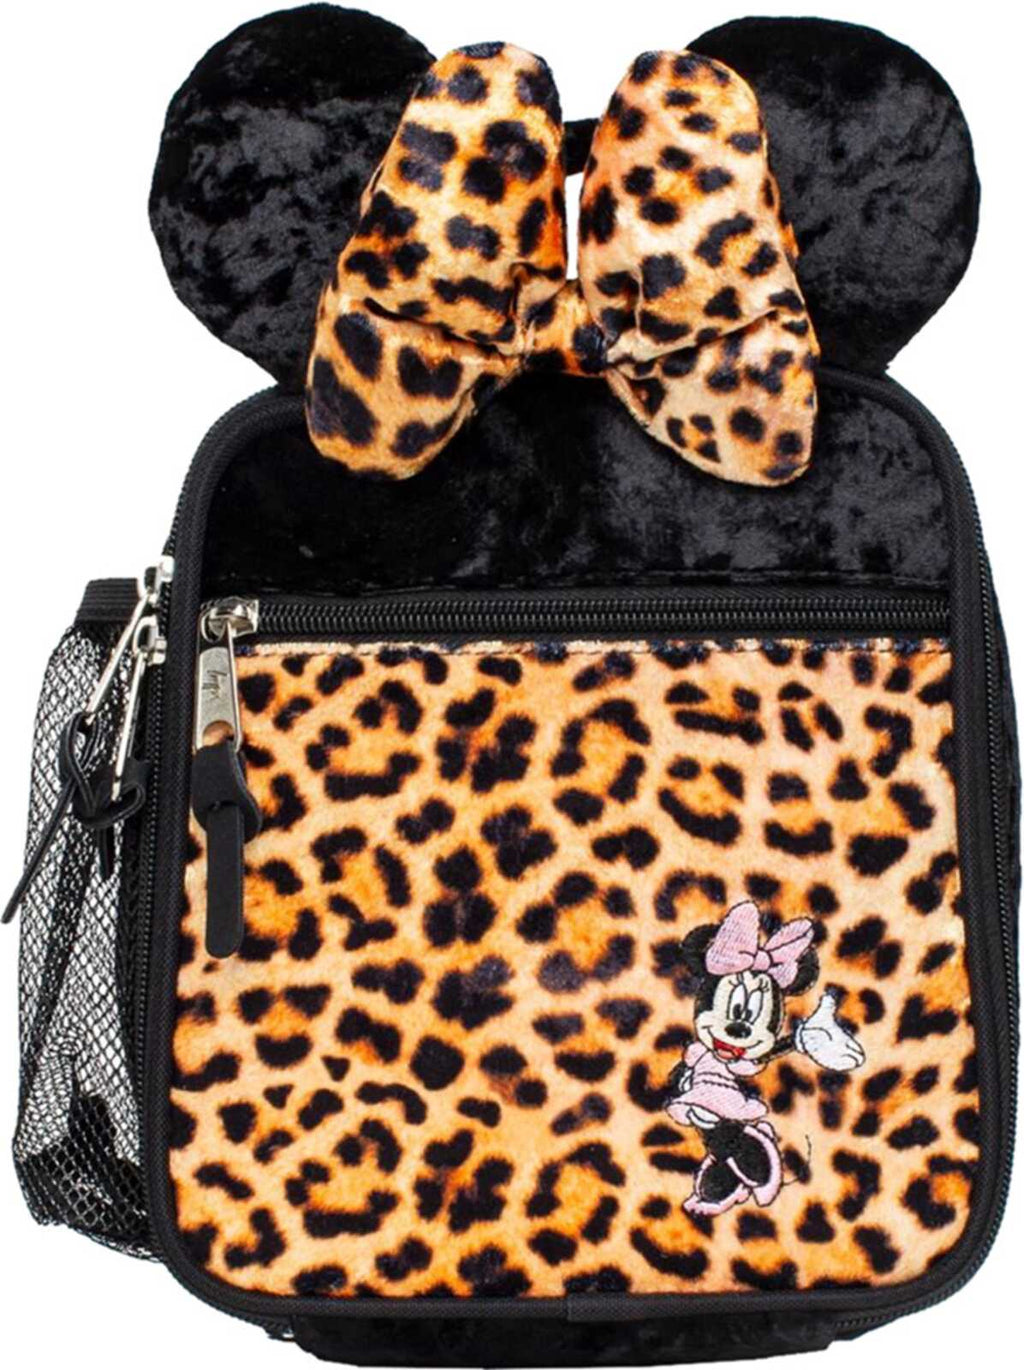 Hype Disney Minnie Leopard Lunch Box Bag	Black/Multi